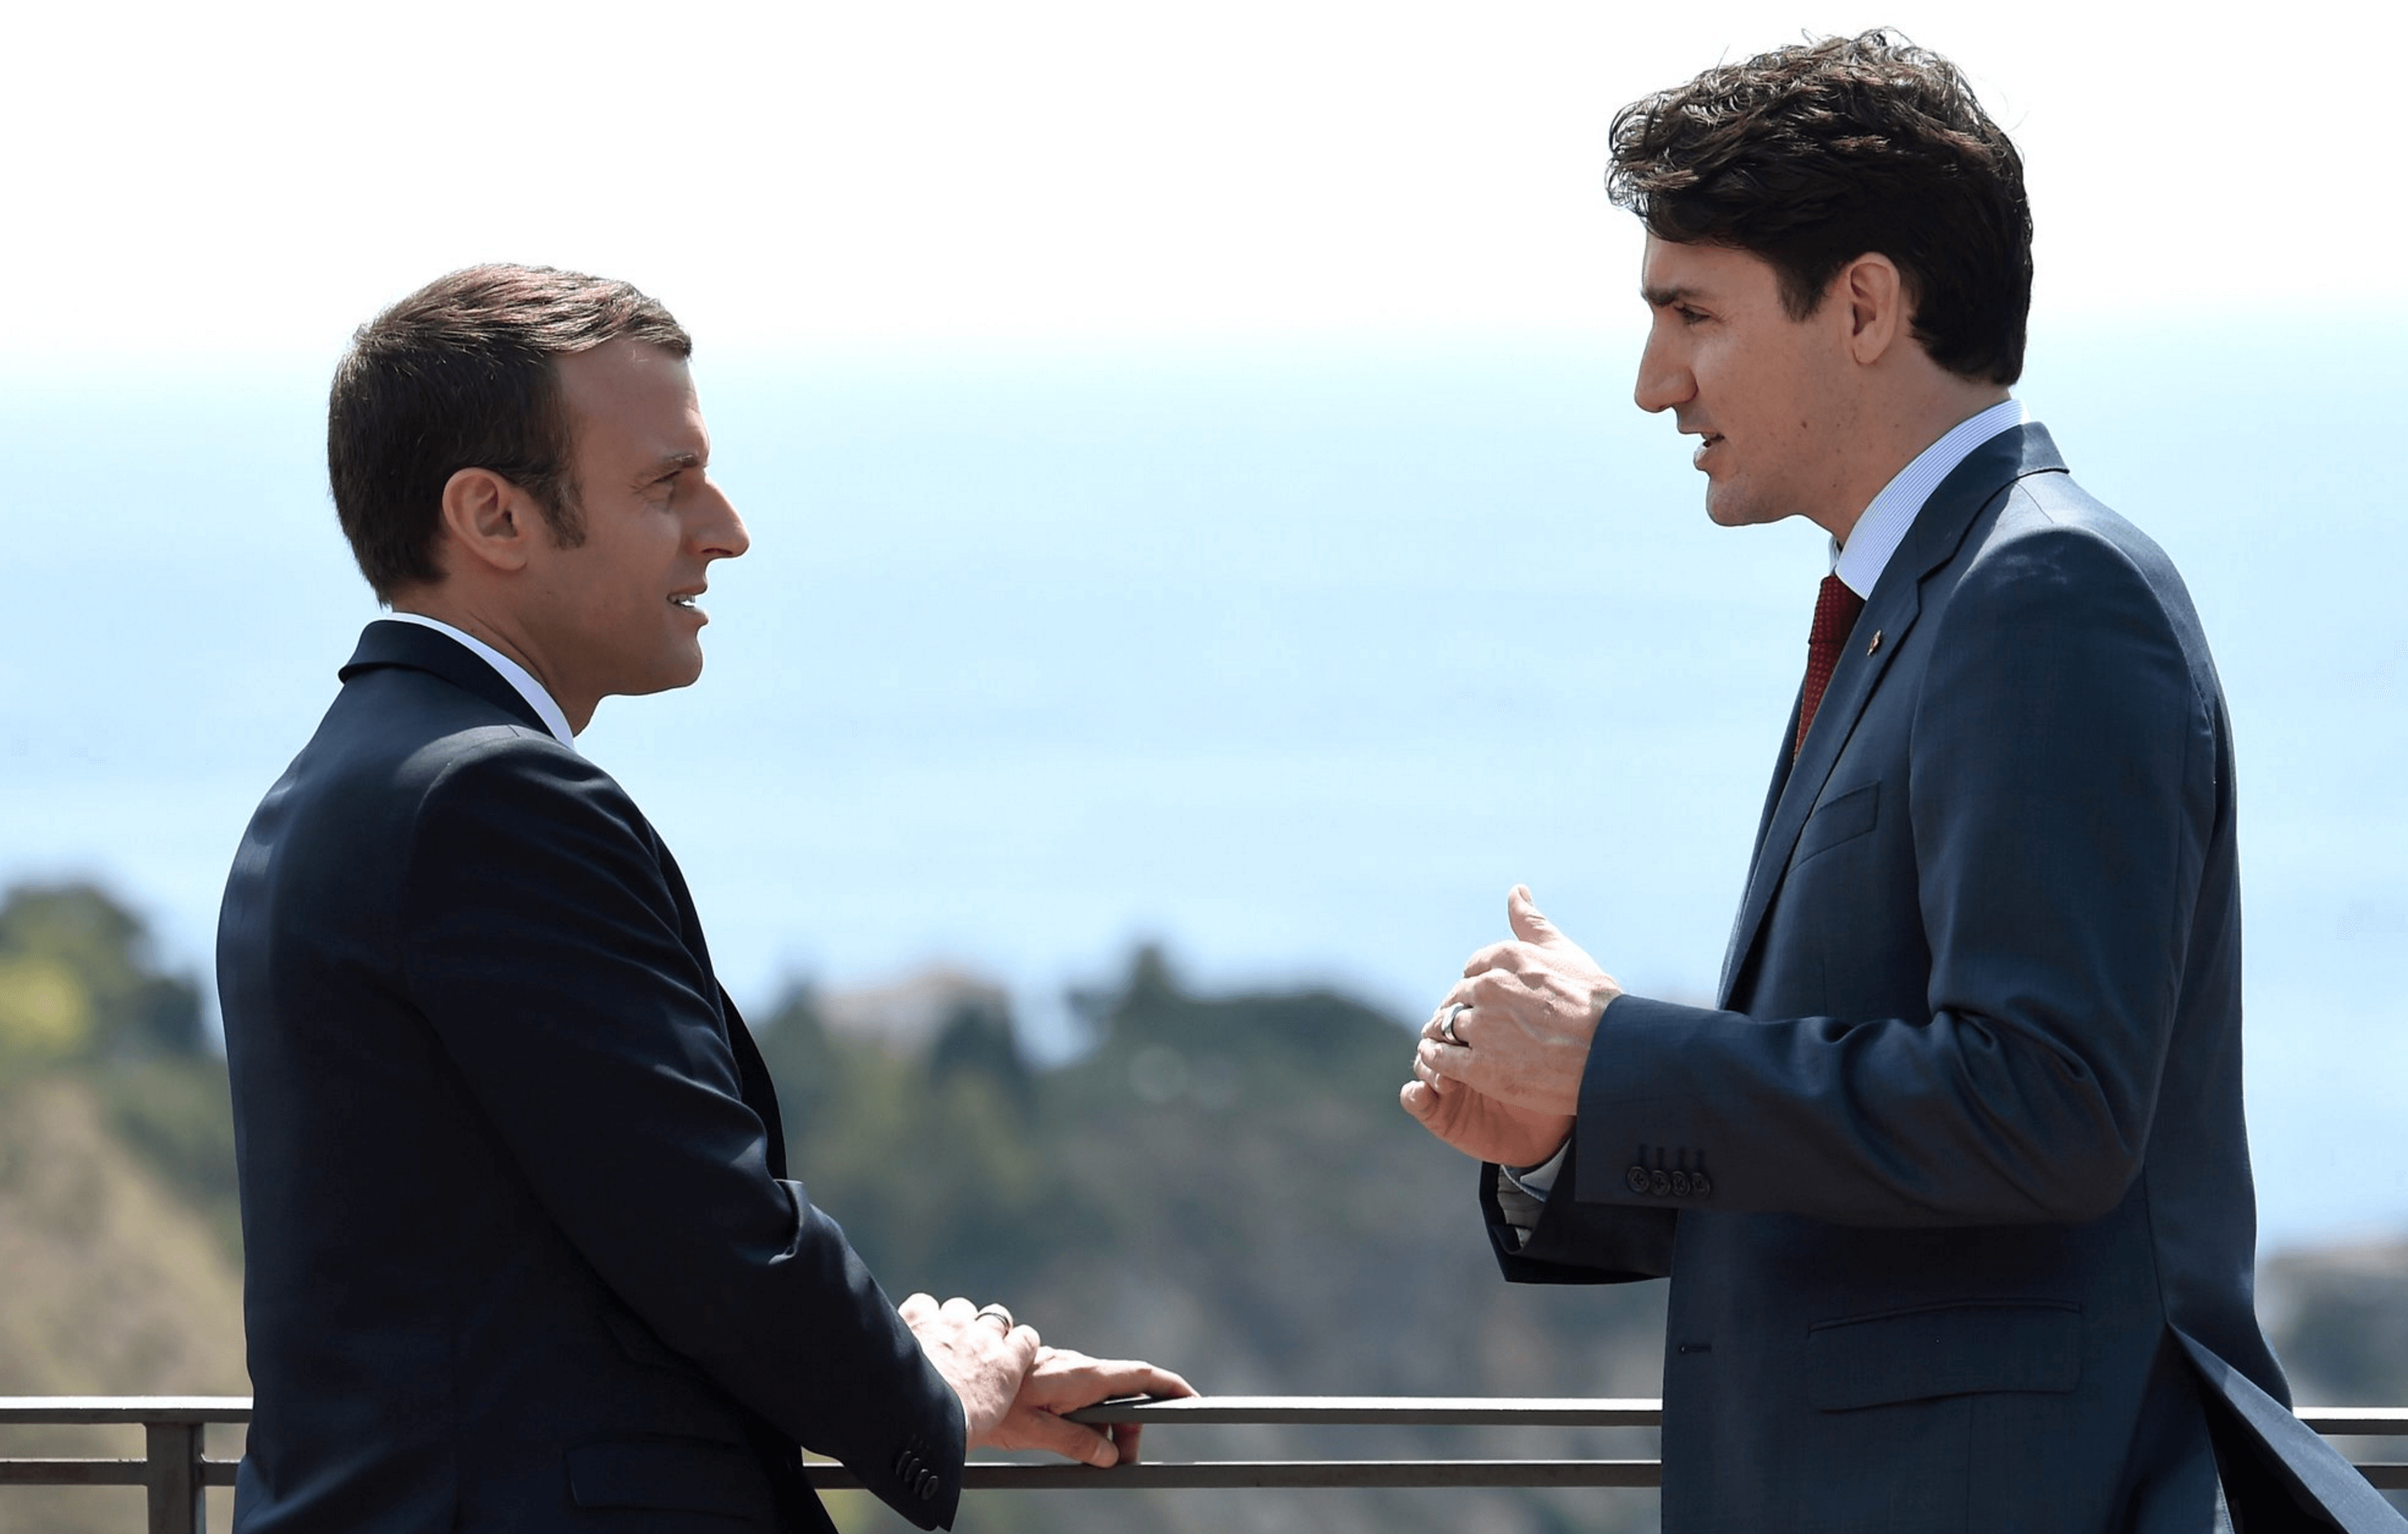 The Internet Is Freaking Out Over Macron and Trudeau's Bromance